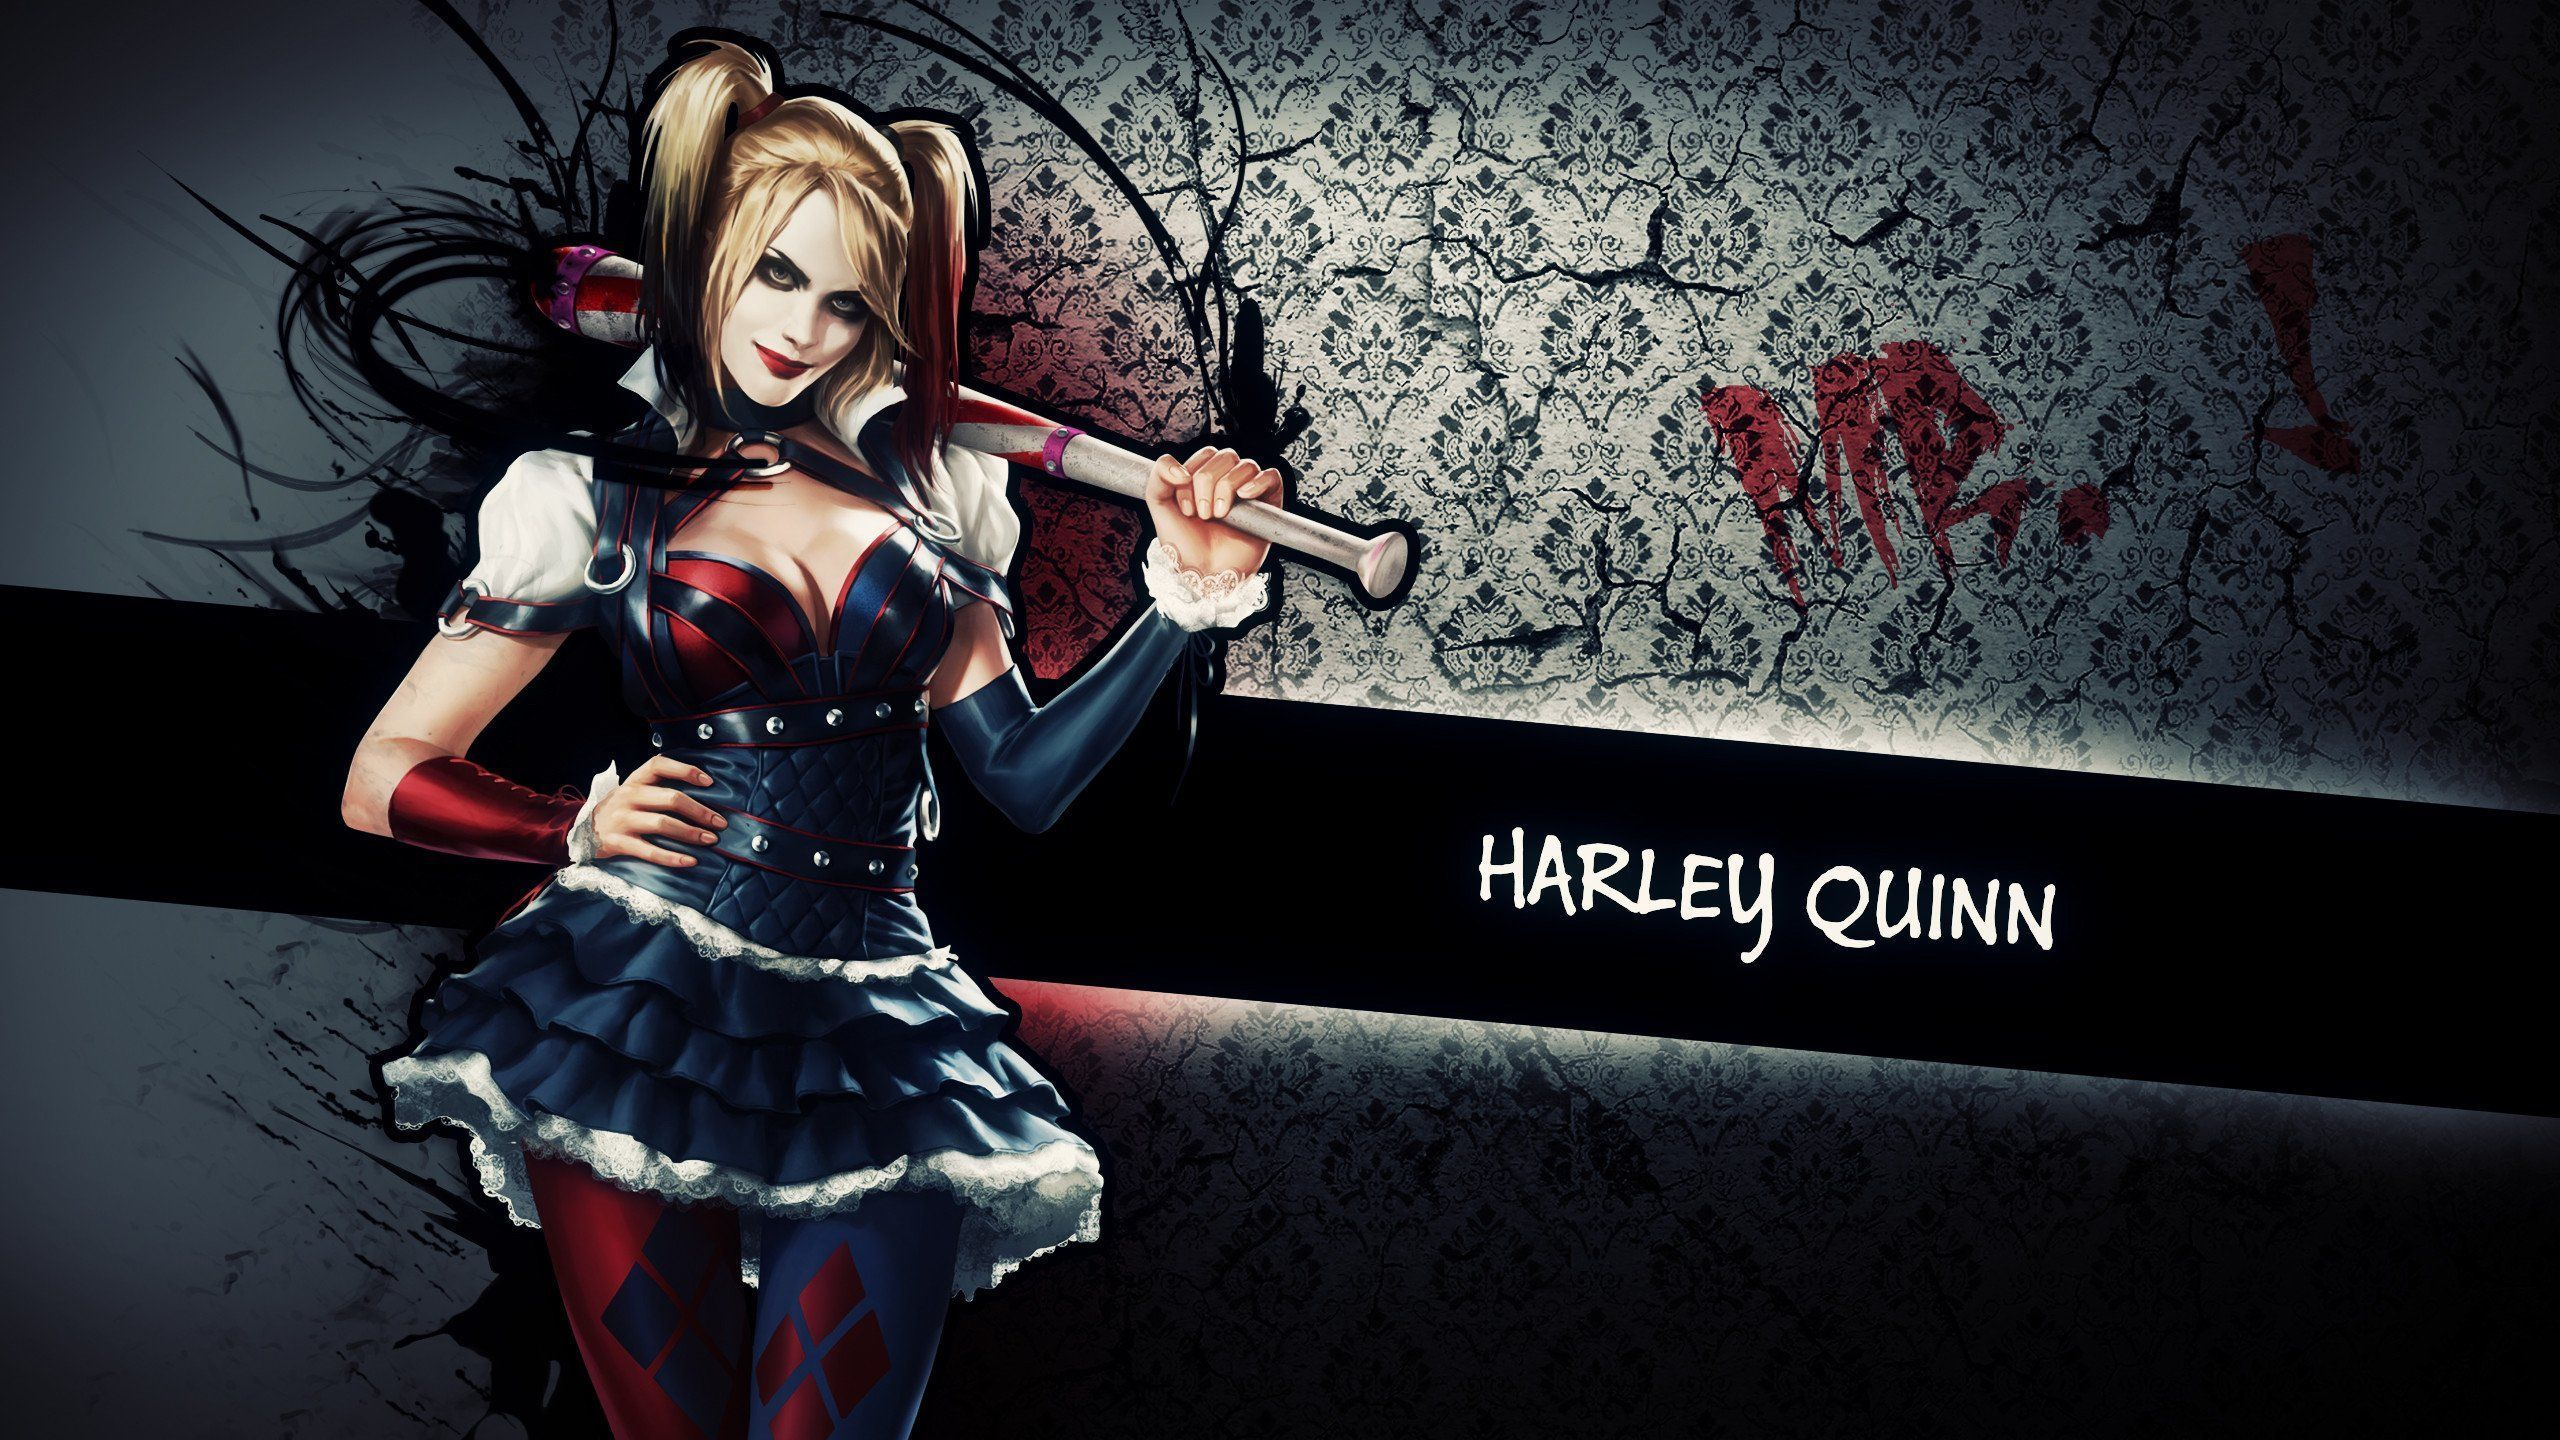 Harley quinn naked game version